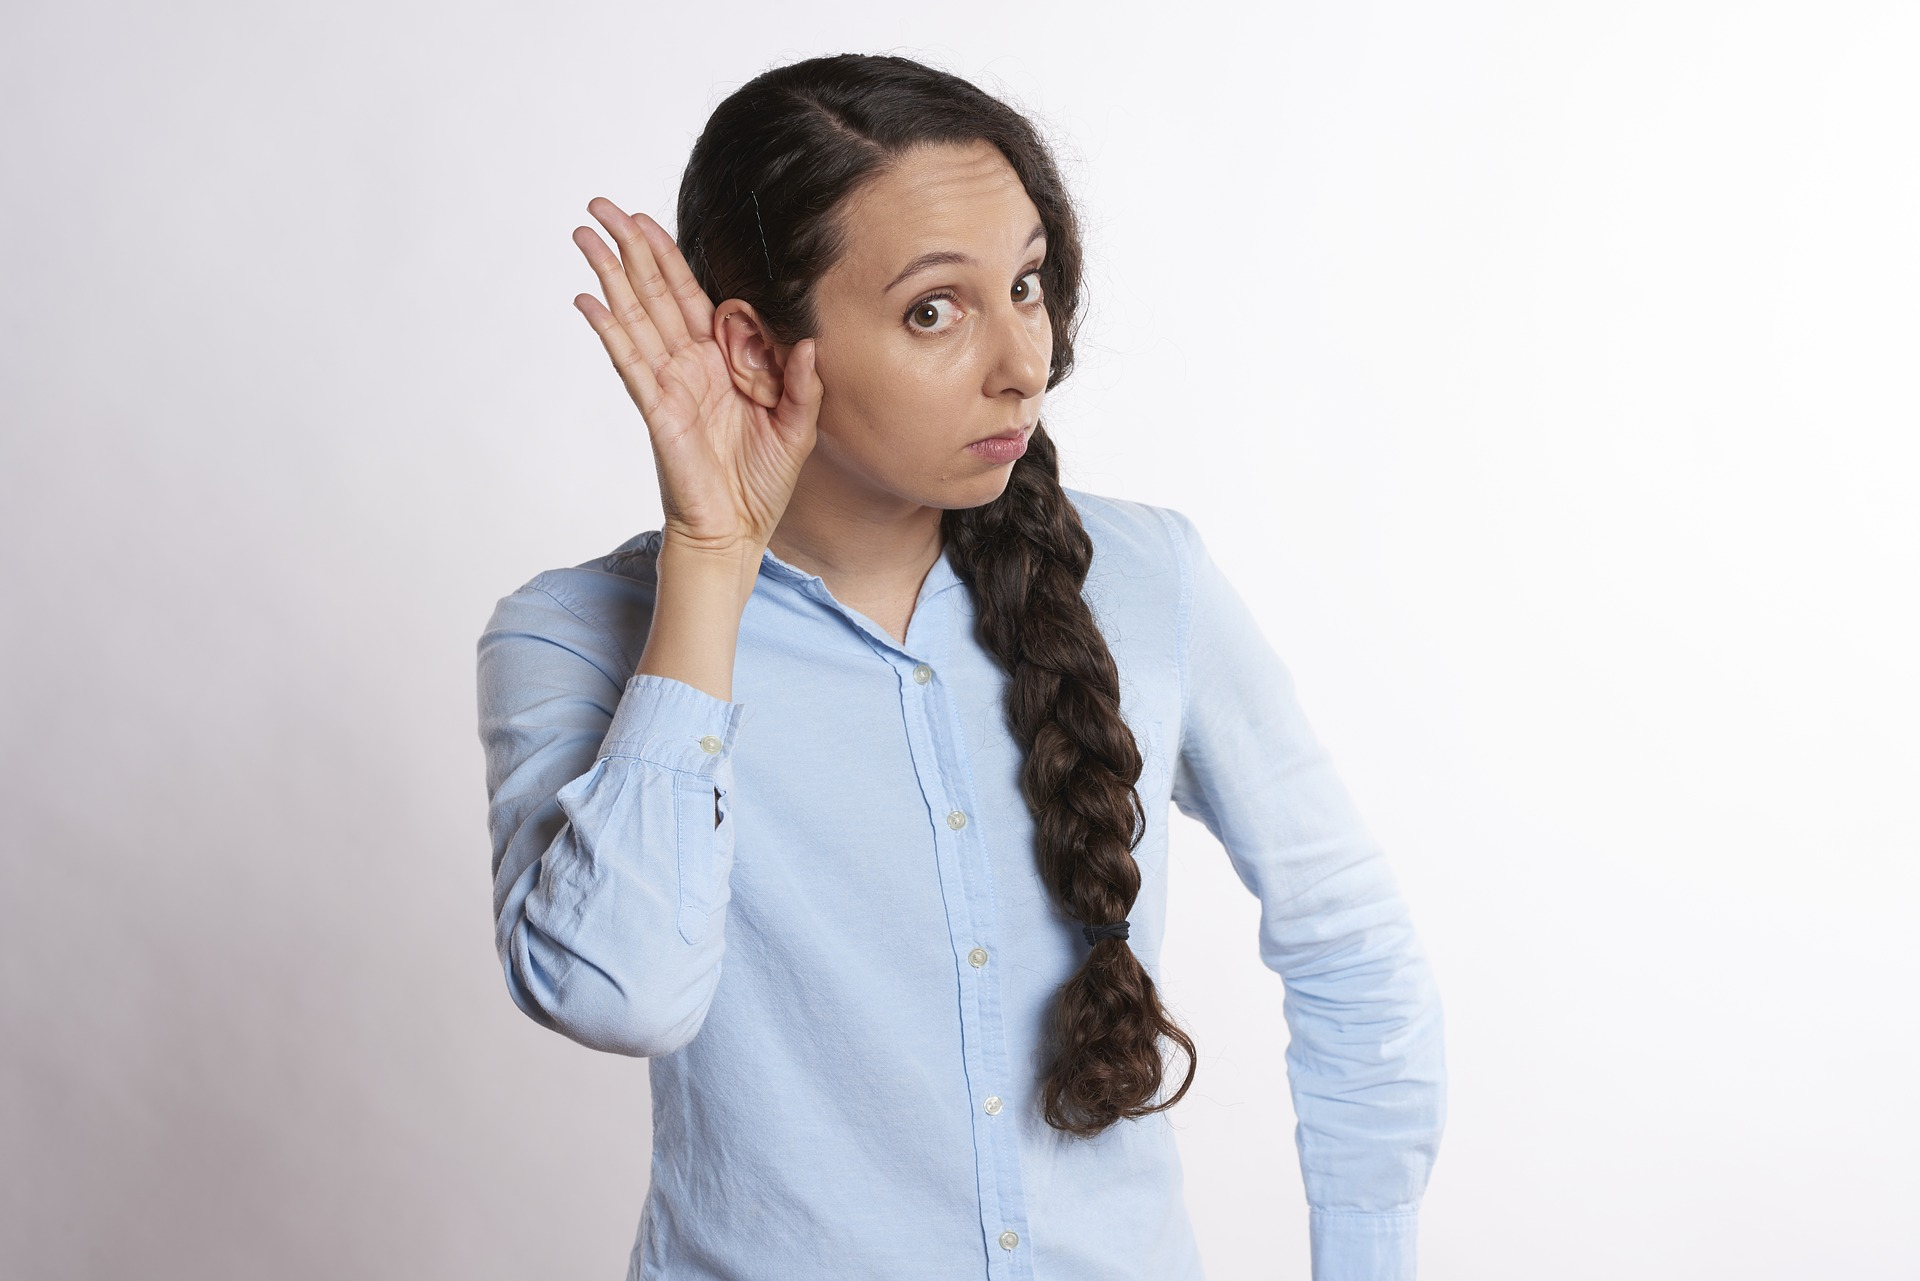 unhappy woman listening ear to bad news